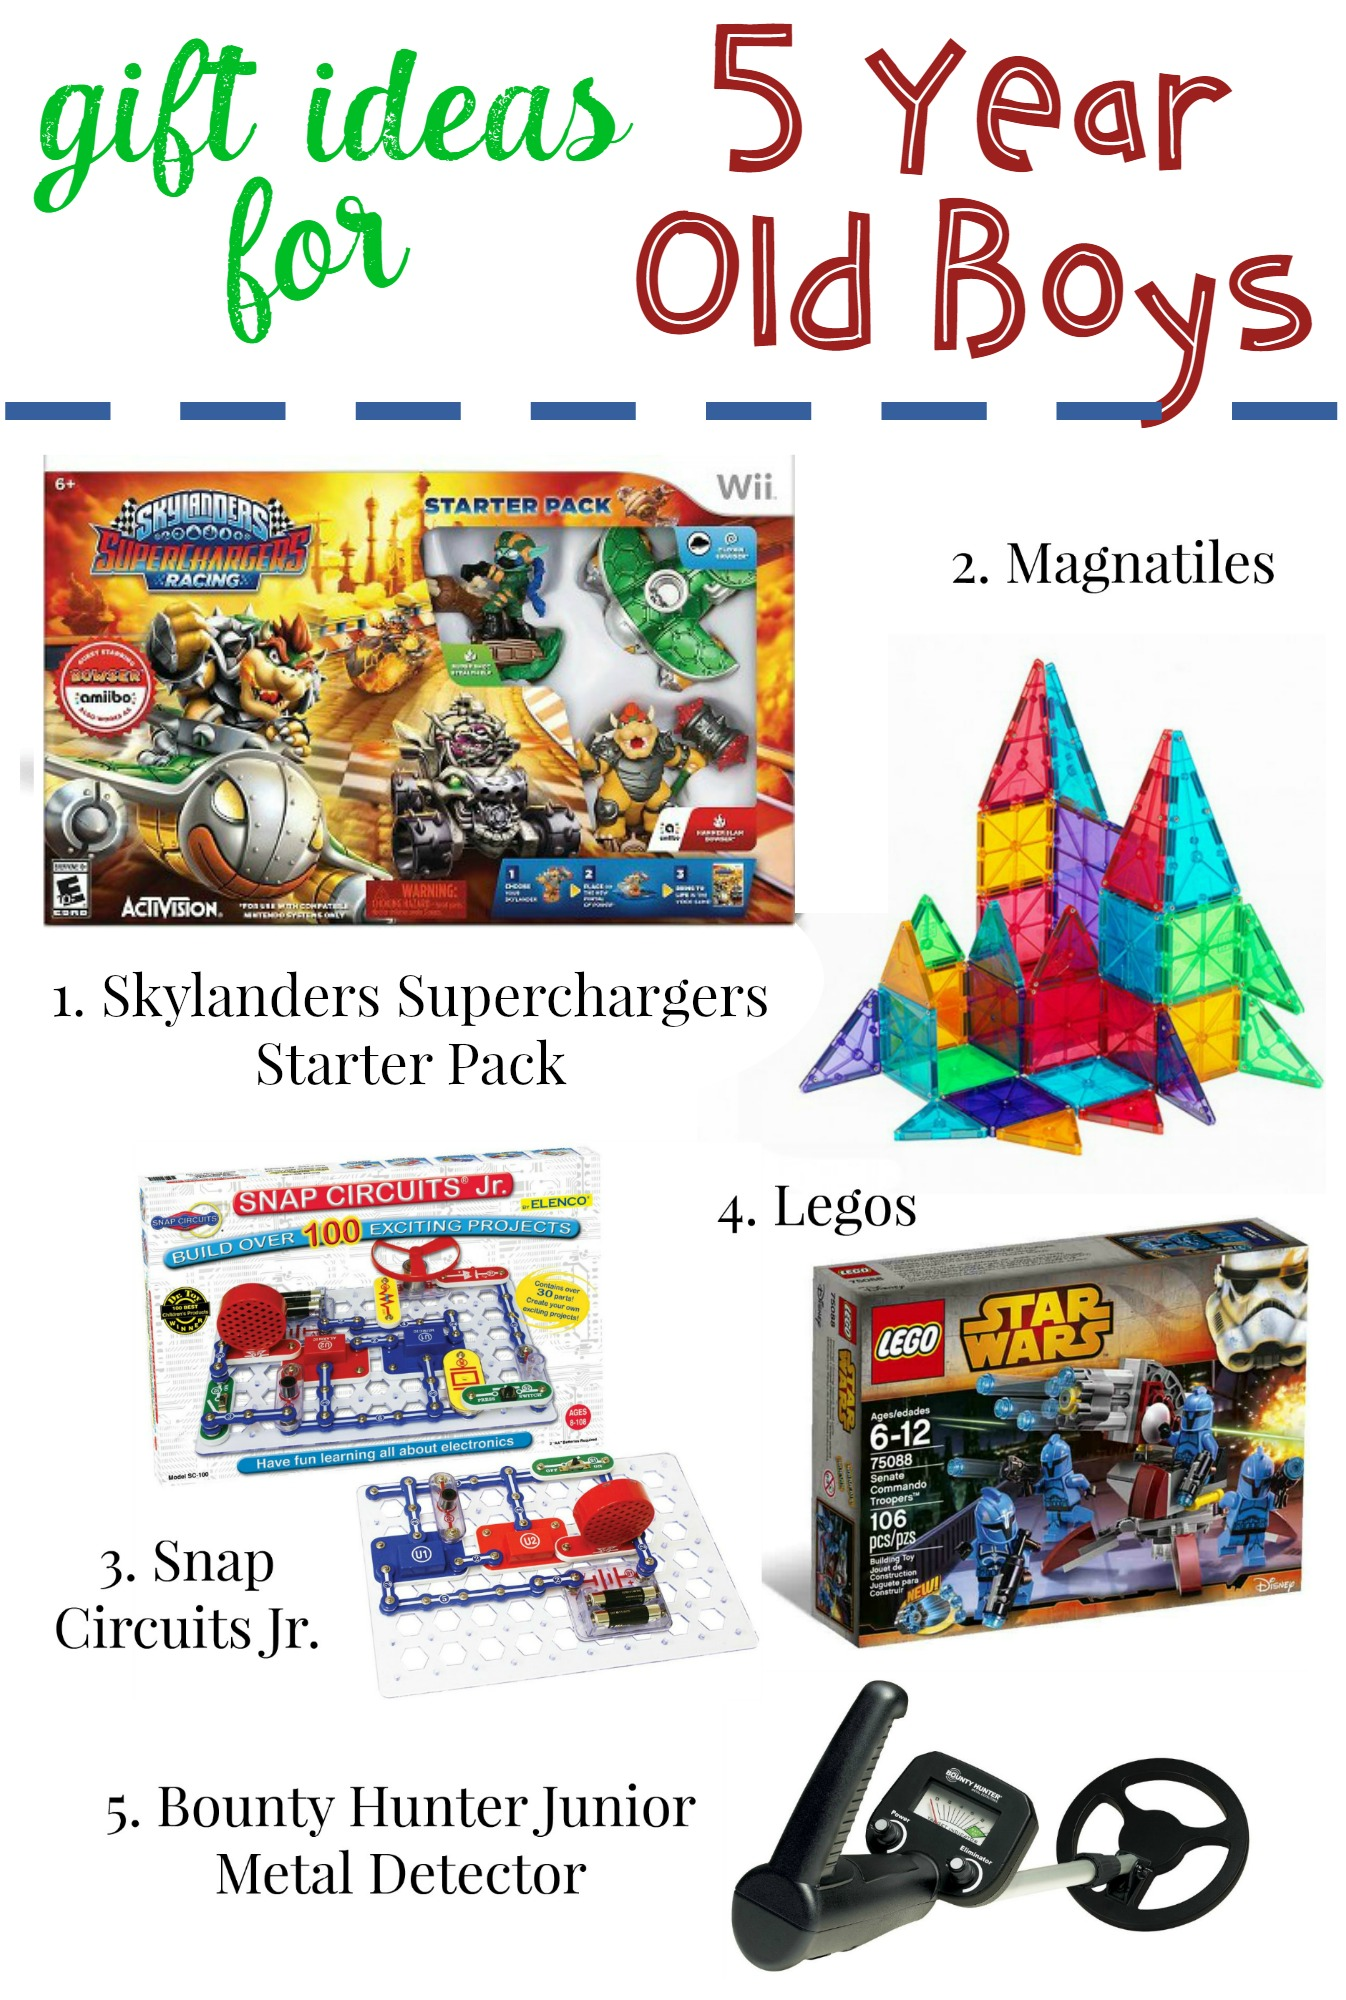 gift ideas for 5 year old boys Gifts Year Old Boys